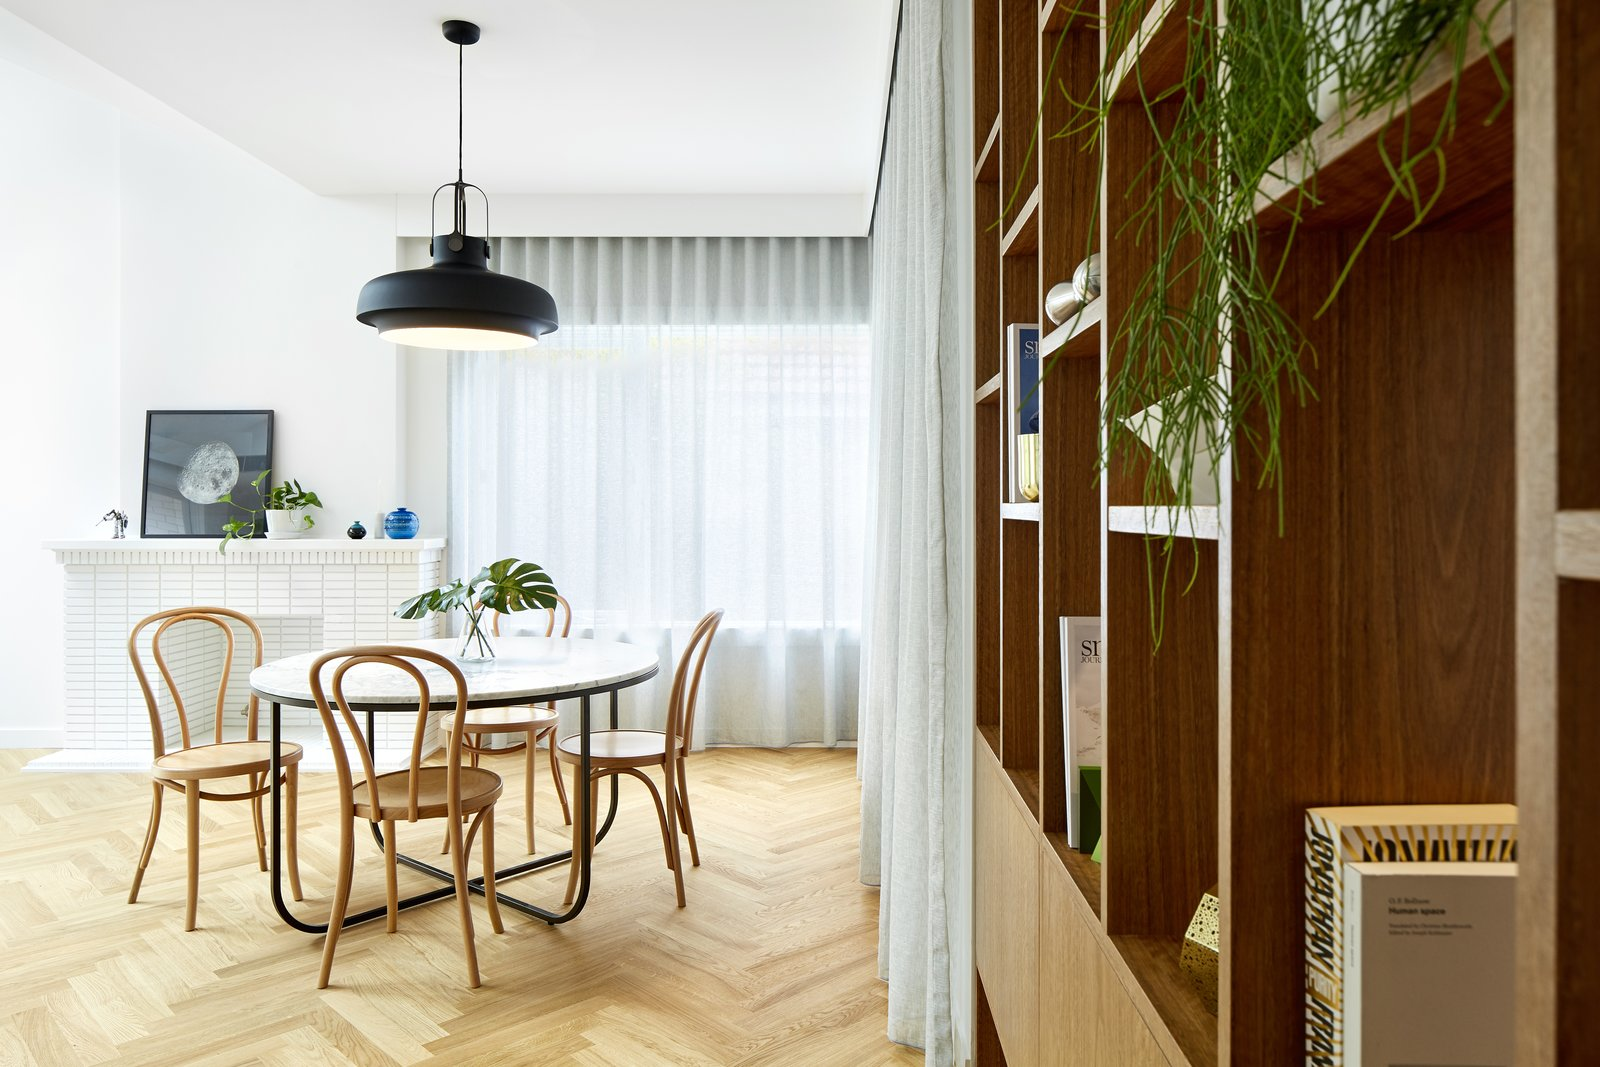 Dining Room, Chair, Pendant Lighting, Light Hardwood Floor, Table, and Standard Layout Fireplace The material and color choices—spotted gum, and clean white and gray—were inspired by the environment of Castlecrag.  Photos from A Renovation Sheds New Light on a Cookie-Cutter Home in Sydney